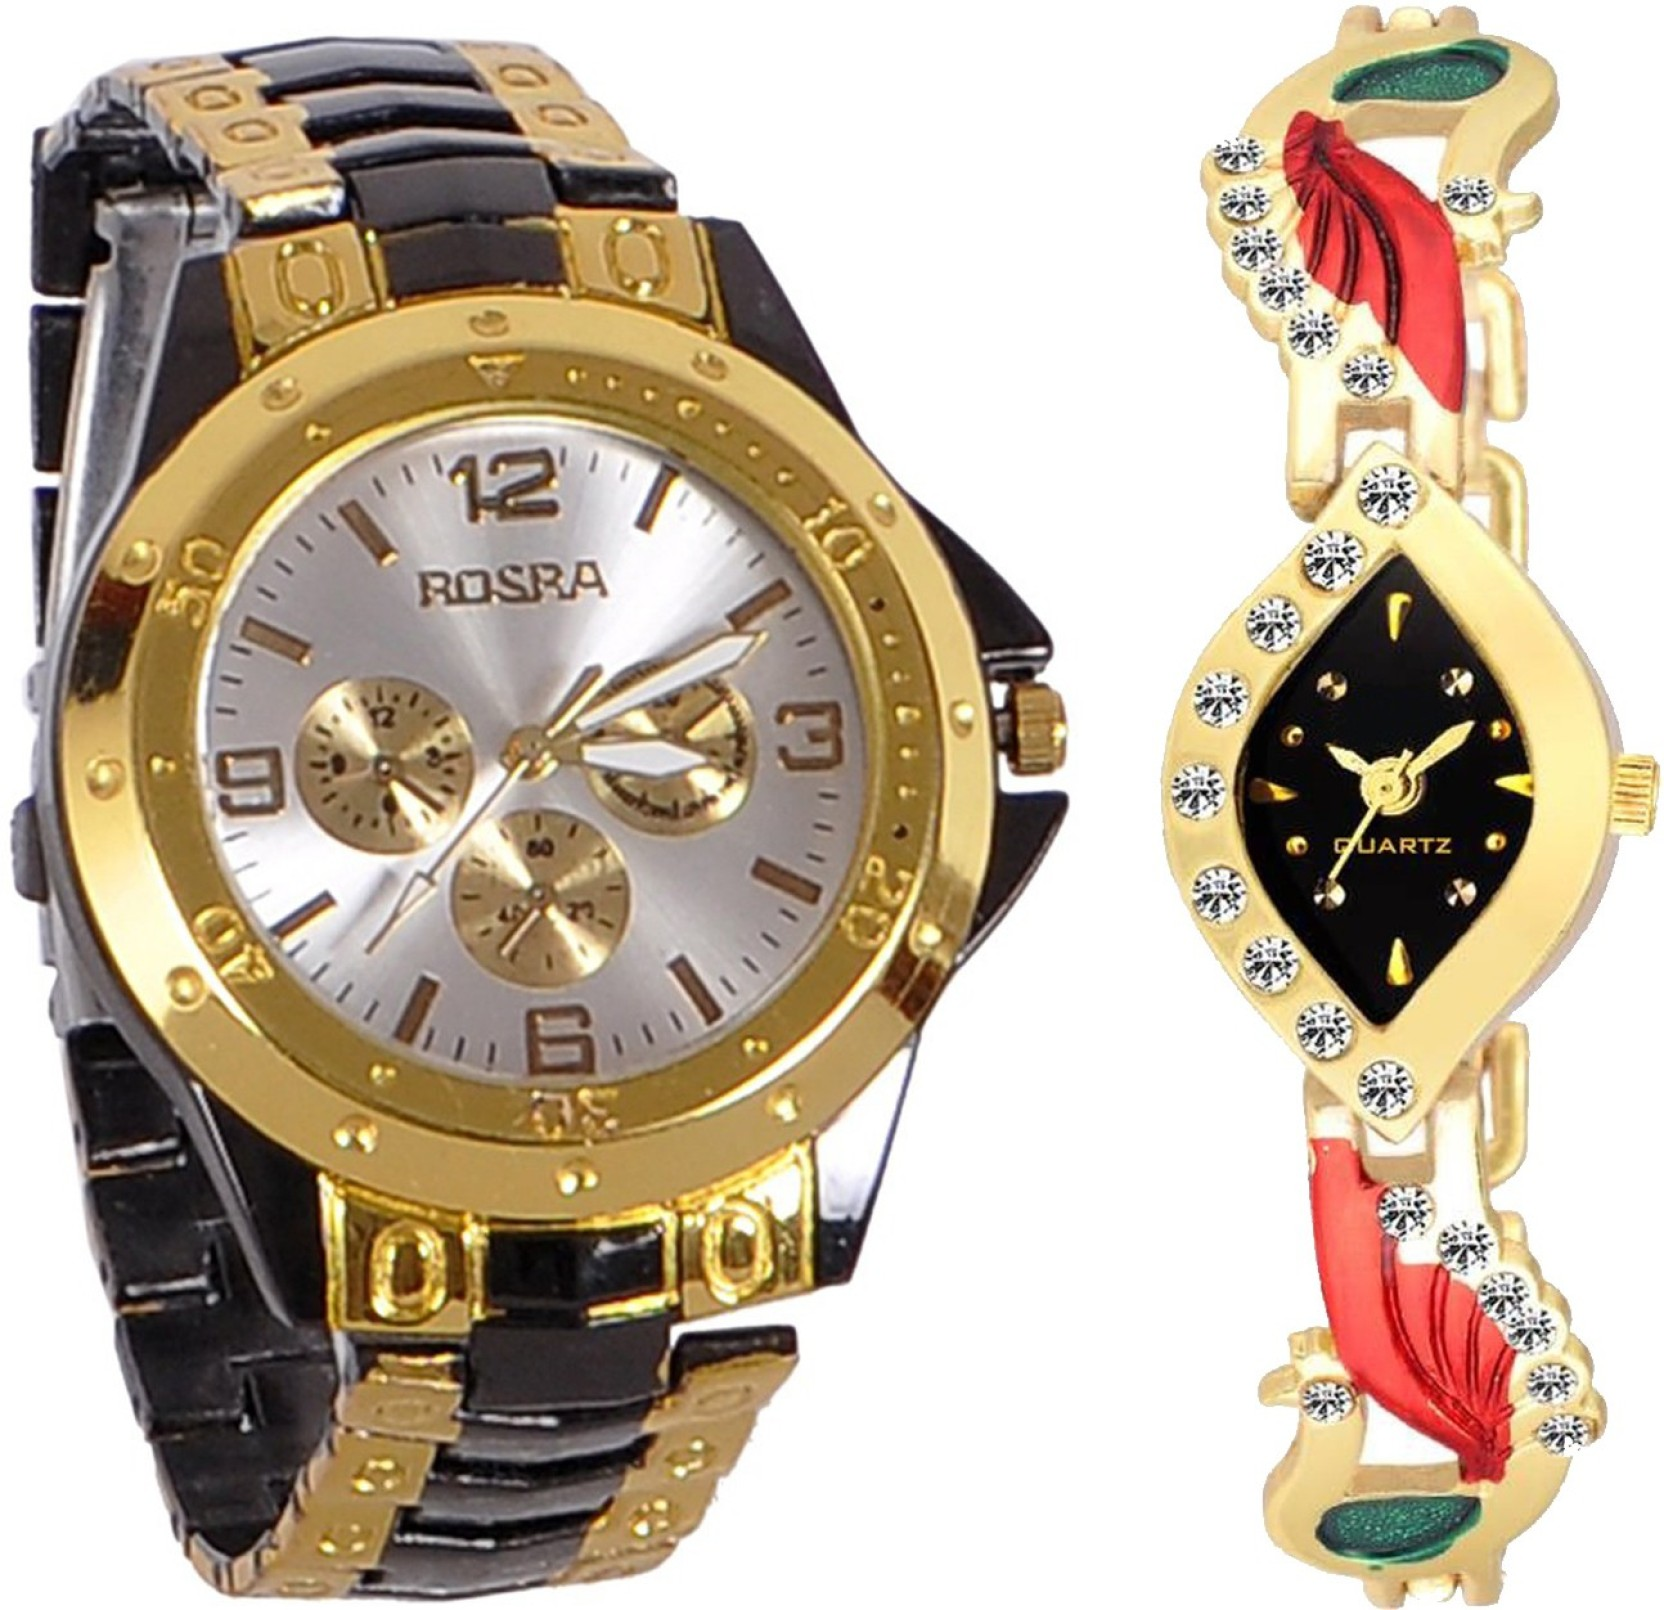 To acquire Stylish rosra analog silver metal wrist watch picture trends